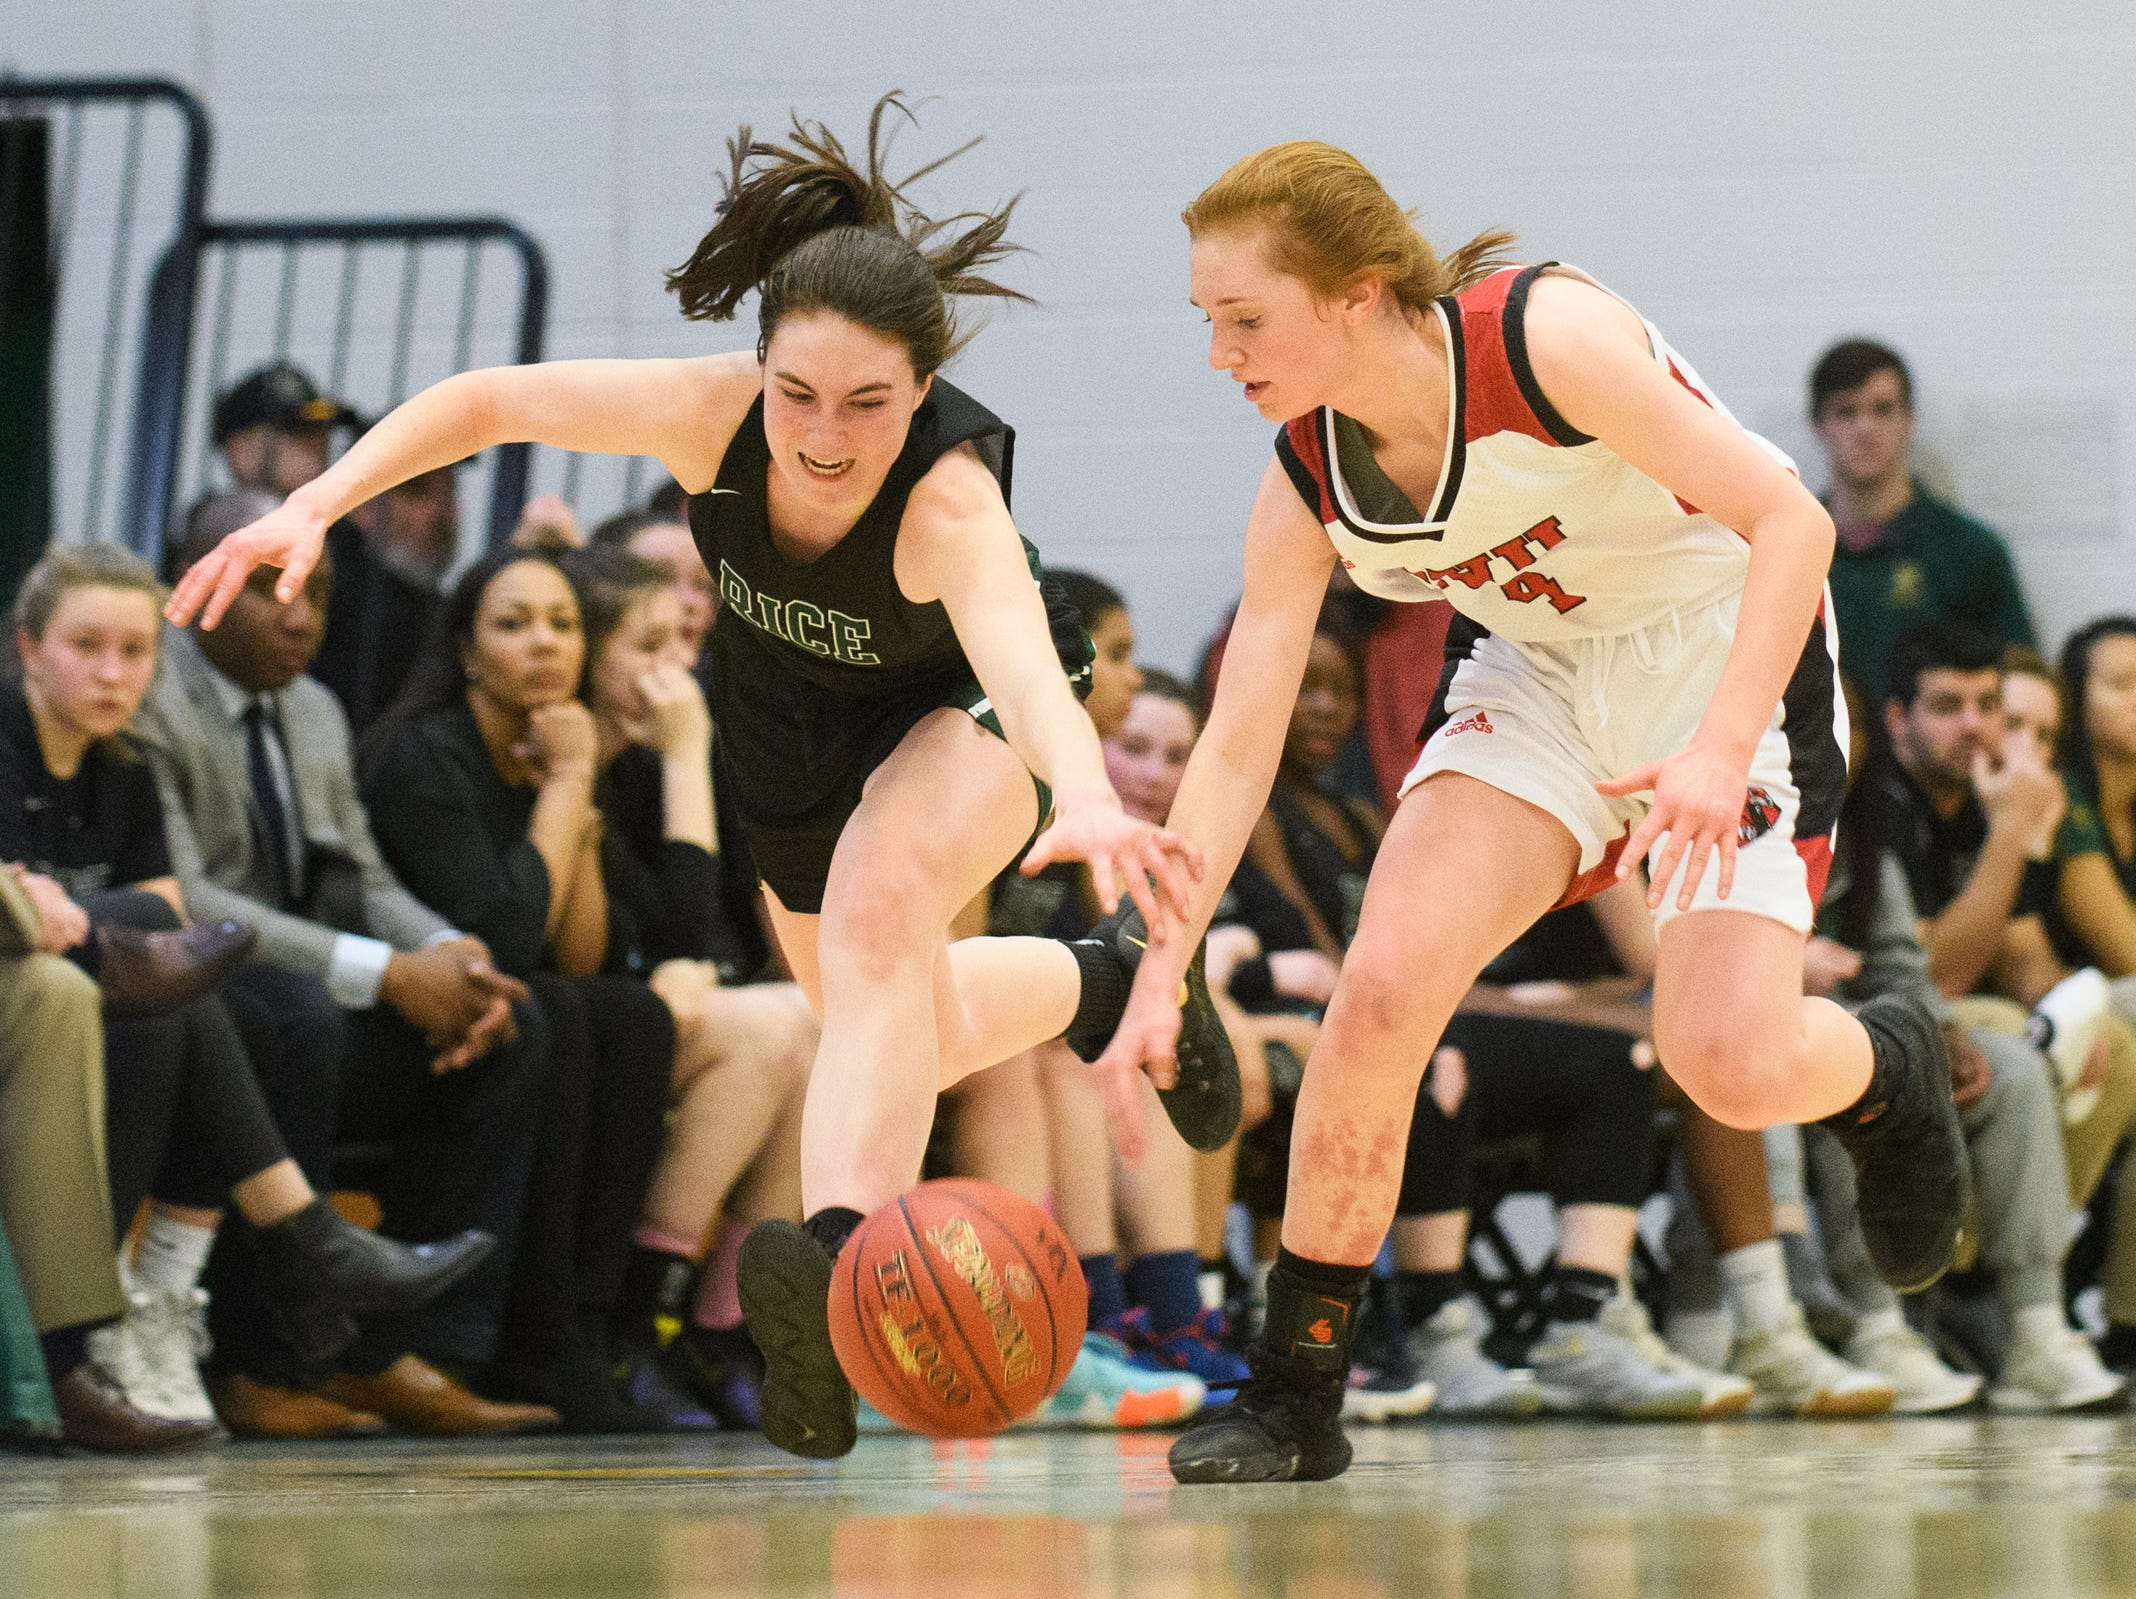 Rice's Kristen Varin (1) and CVU's Catherine Gilwee (4) battle for the loose ball during the girls semifinal basketball game between the Rice Green Knights and the Champlain Valley Union Redhawks at Patrick Gym on Wednesday nigh March 6, 2019 in Burlington, Vermont.